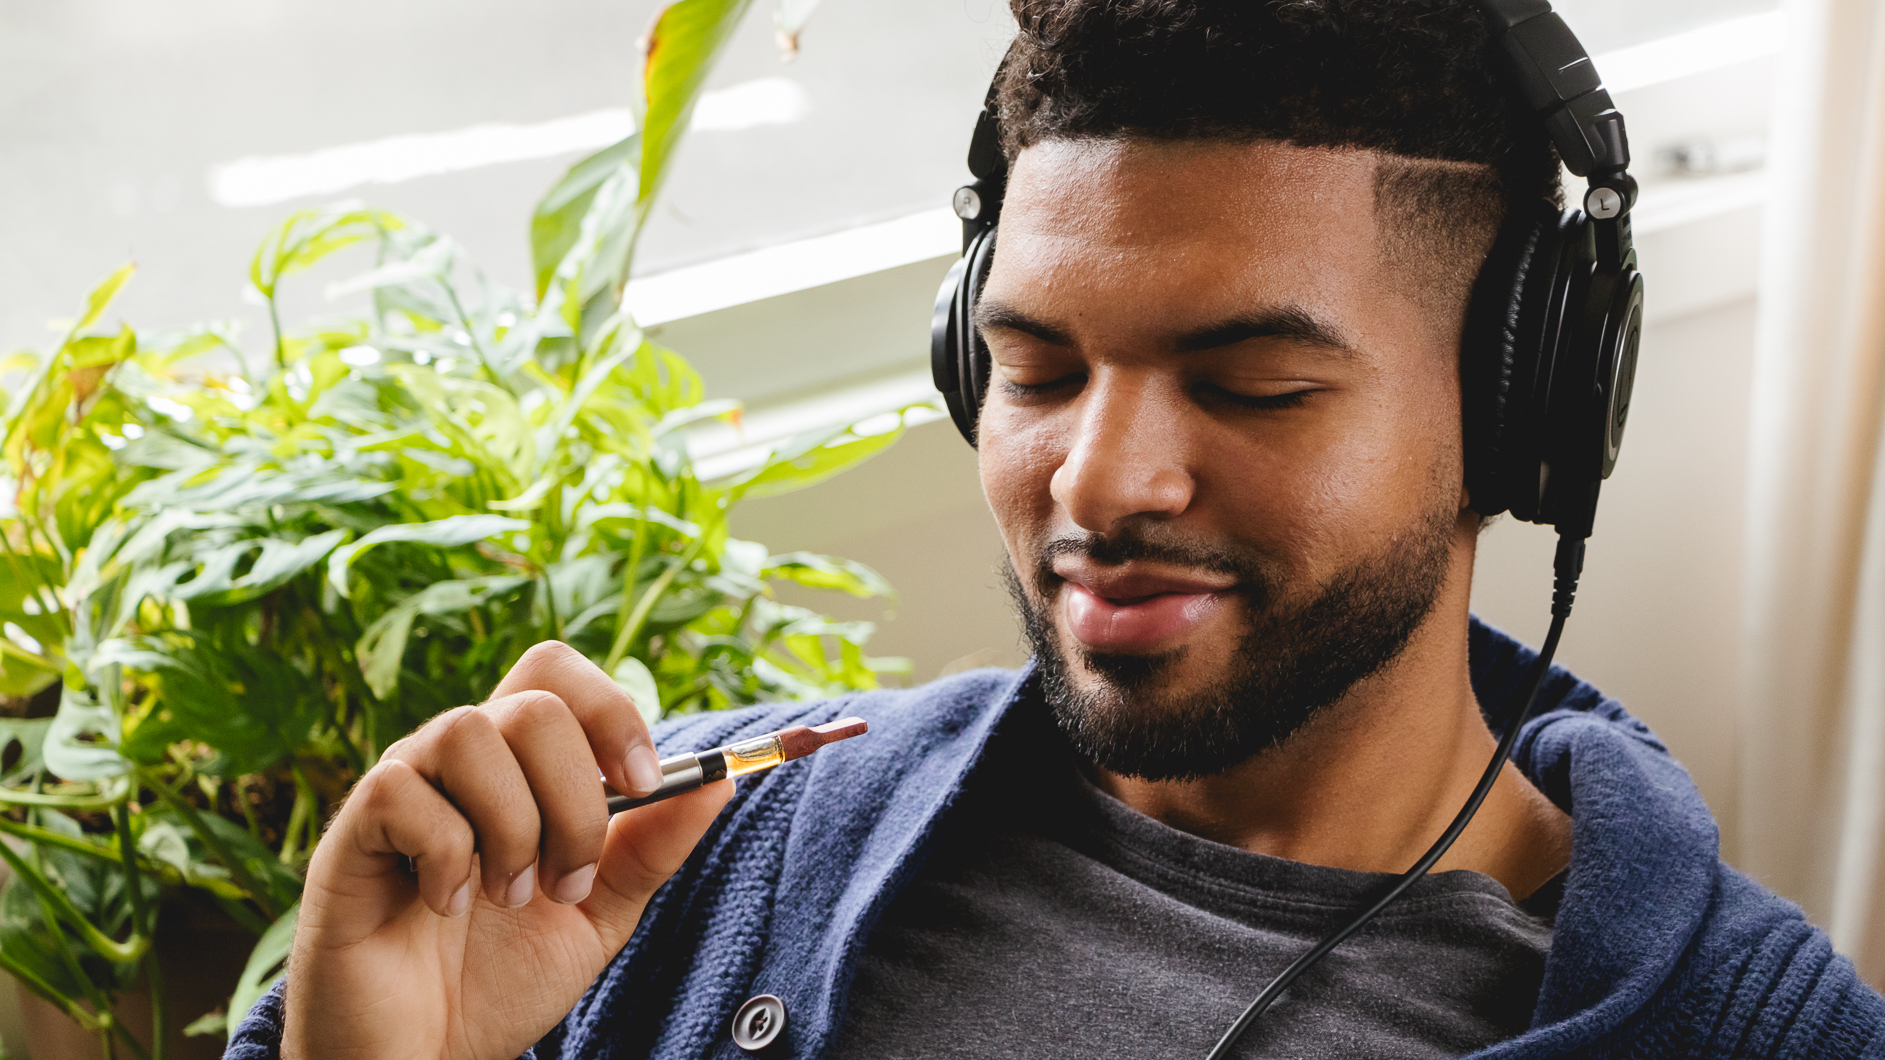 Image of a man listening to music through his headphones and holding a marijuana vaporizer